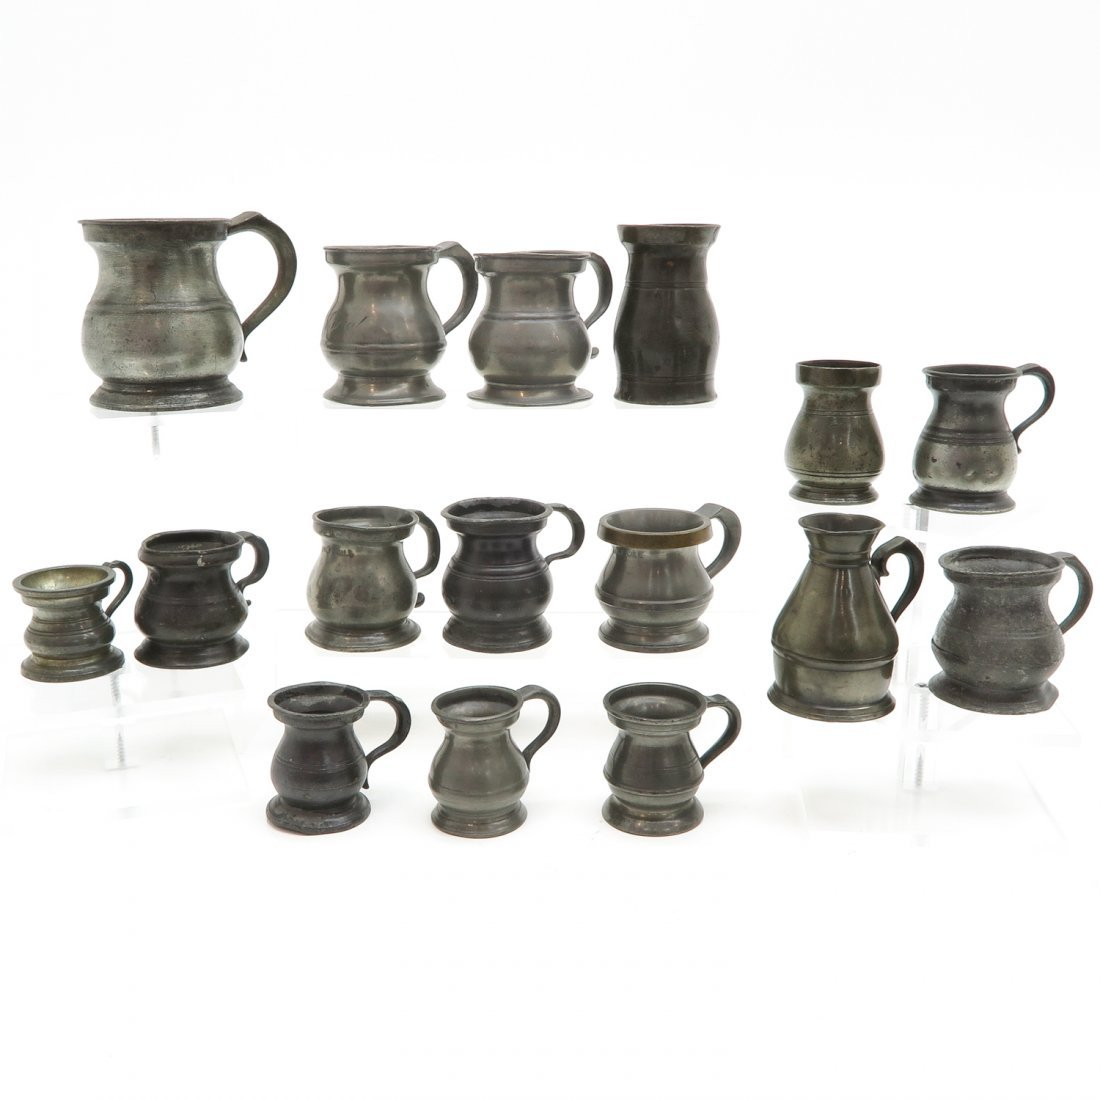 Lot of 18th / 19th Century Pewter Tankards